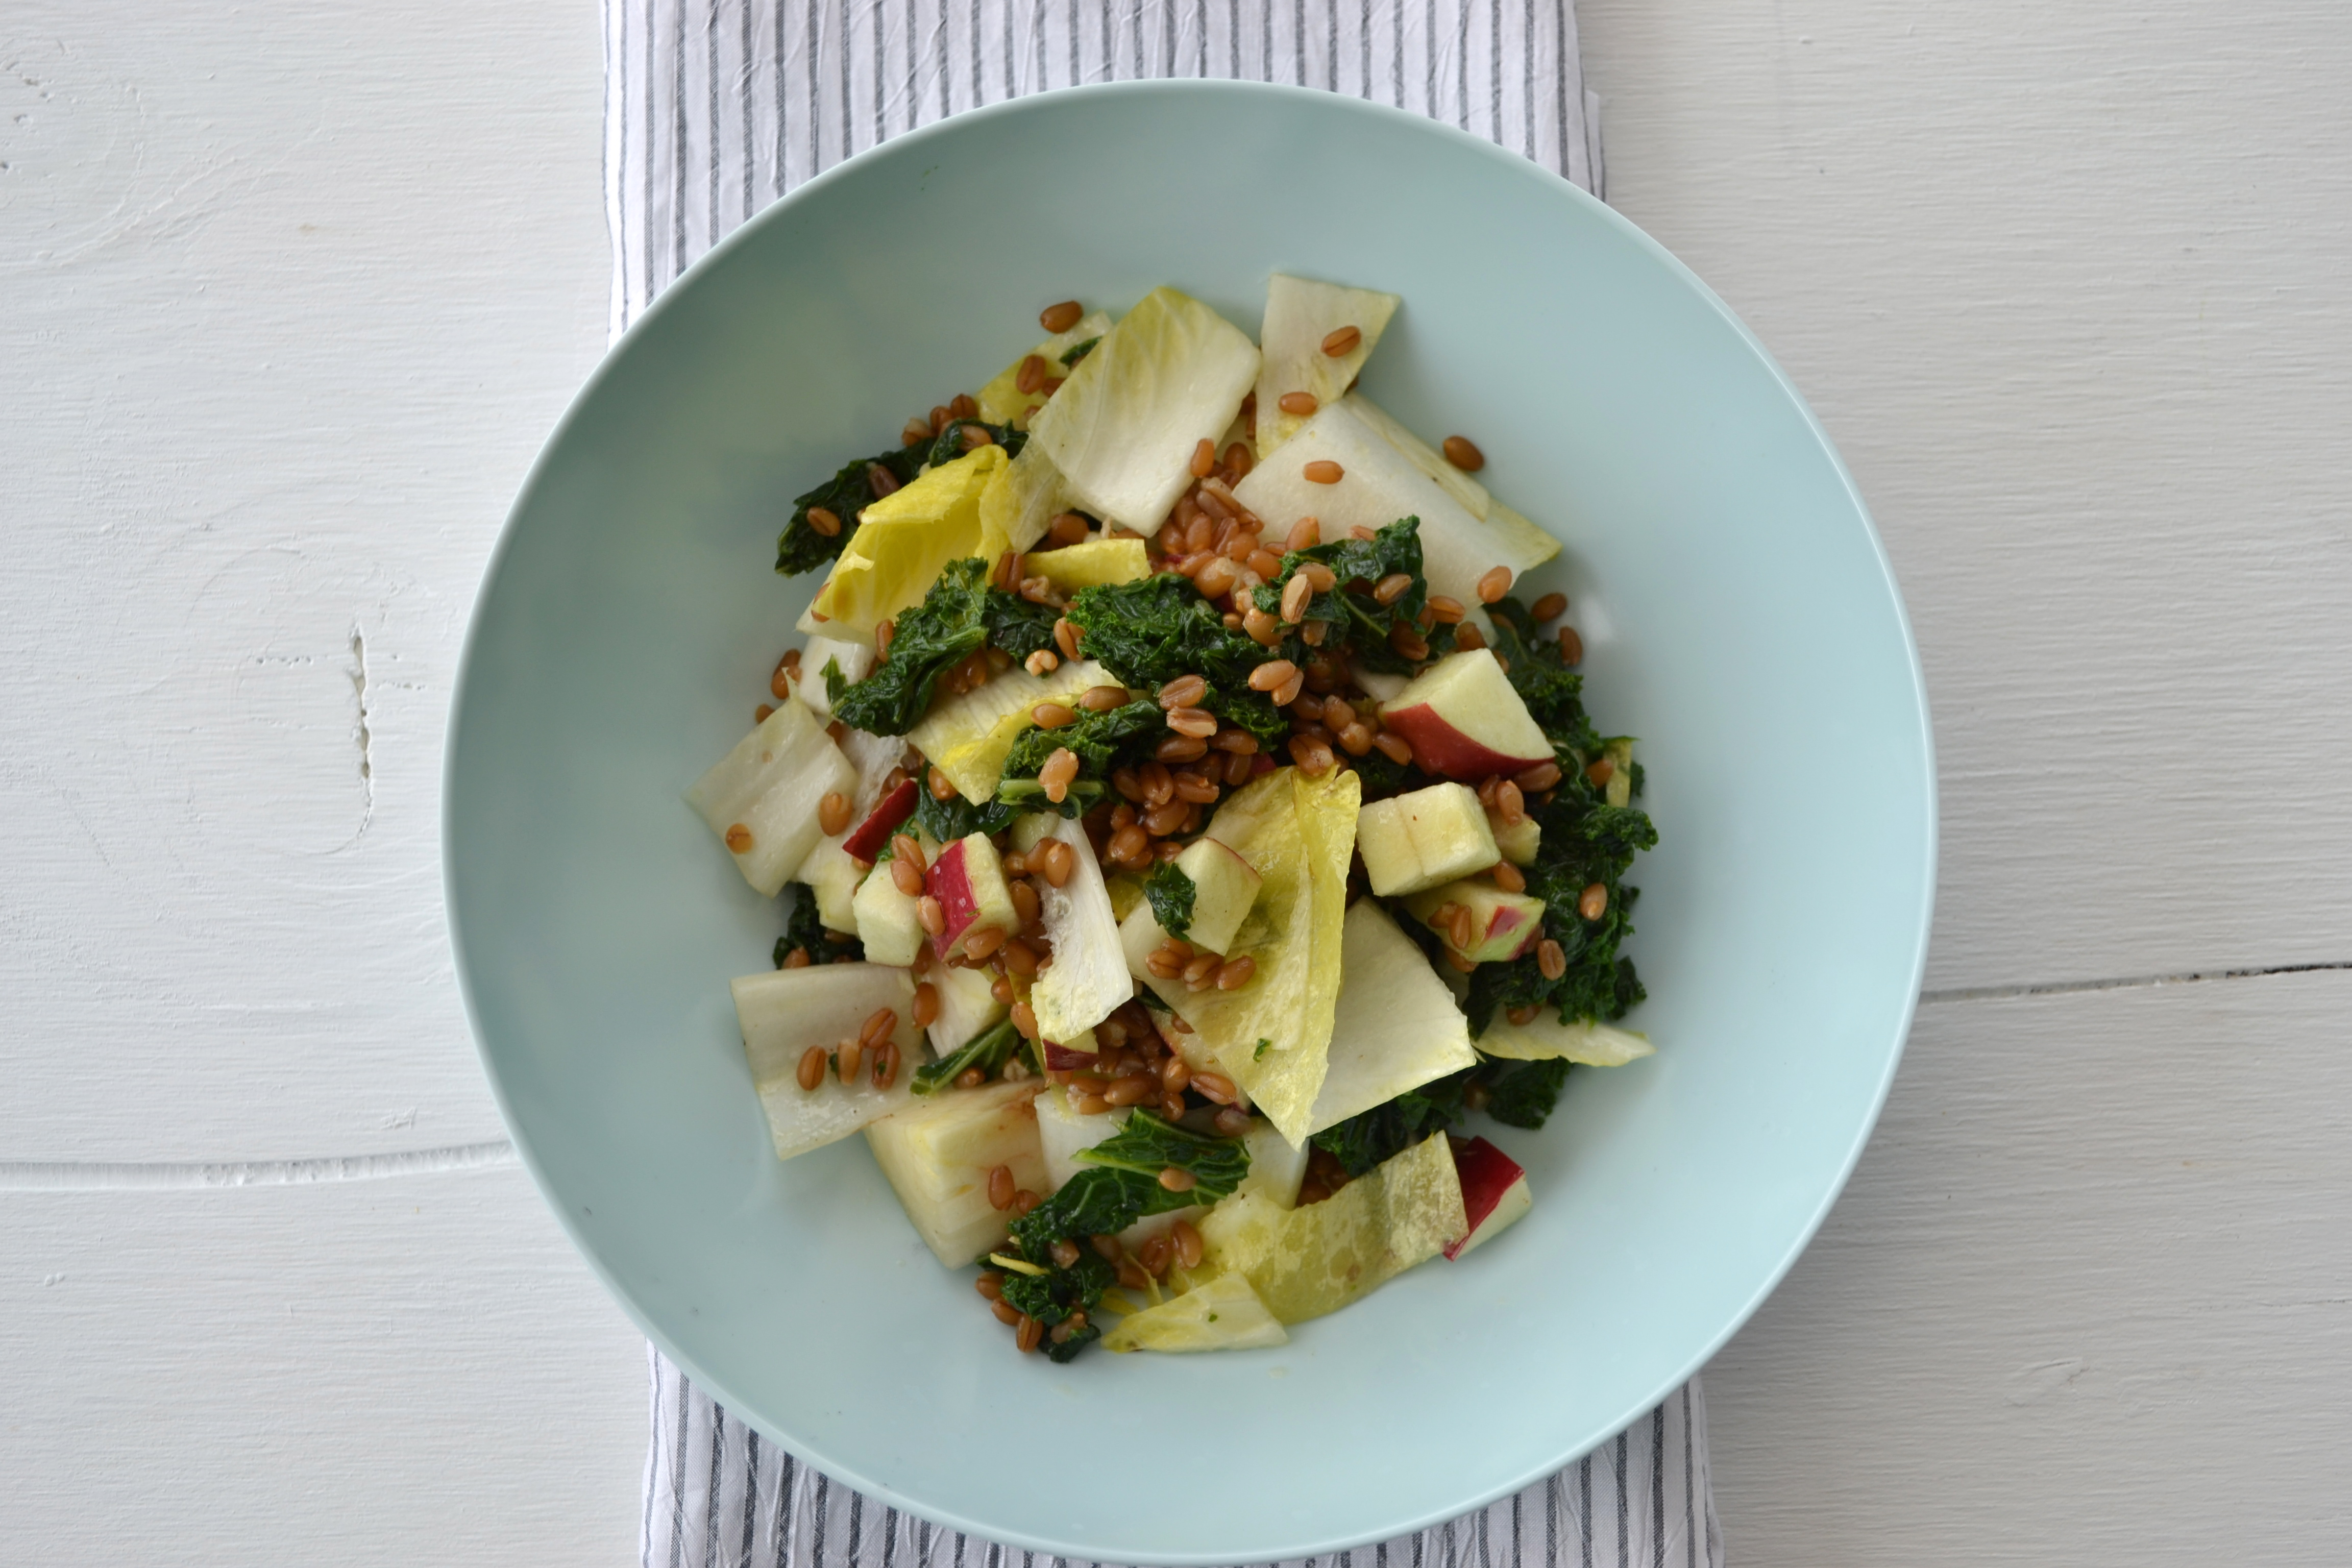 Wheat berry salad with apple, kale and endive